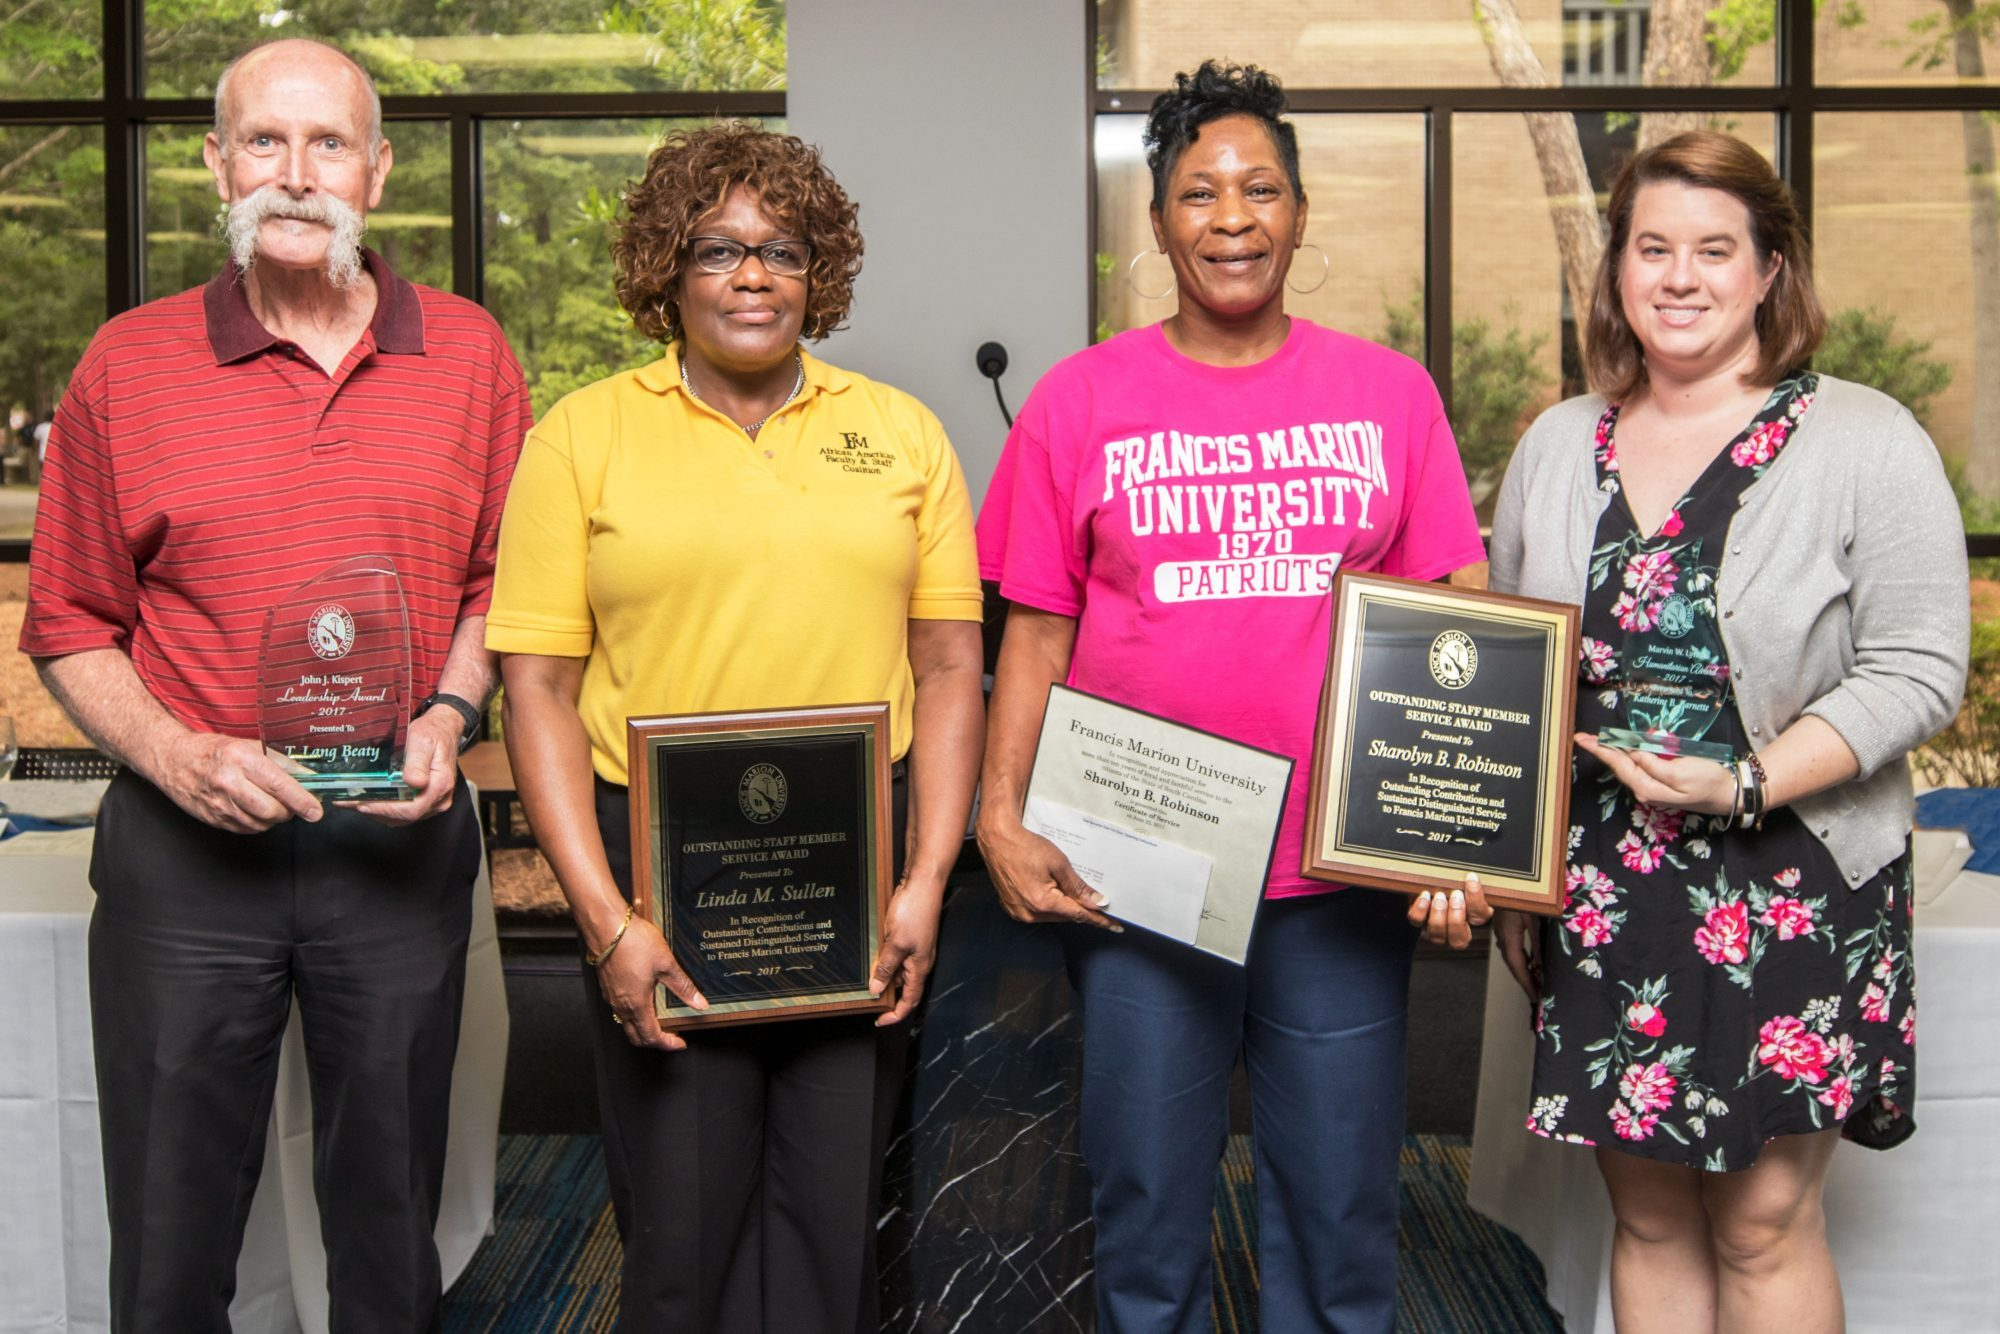 Francis Marion recognizes outstanding staff service